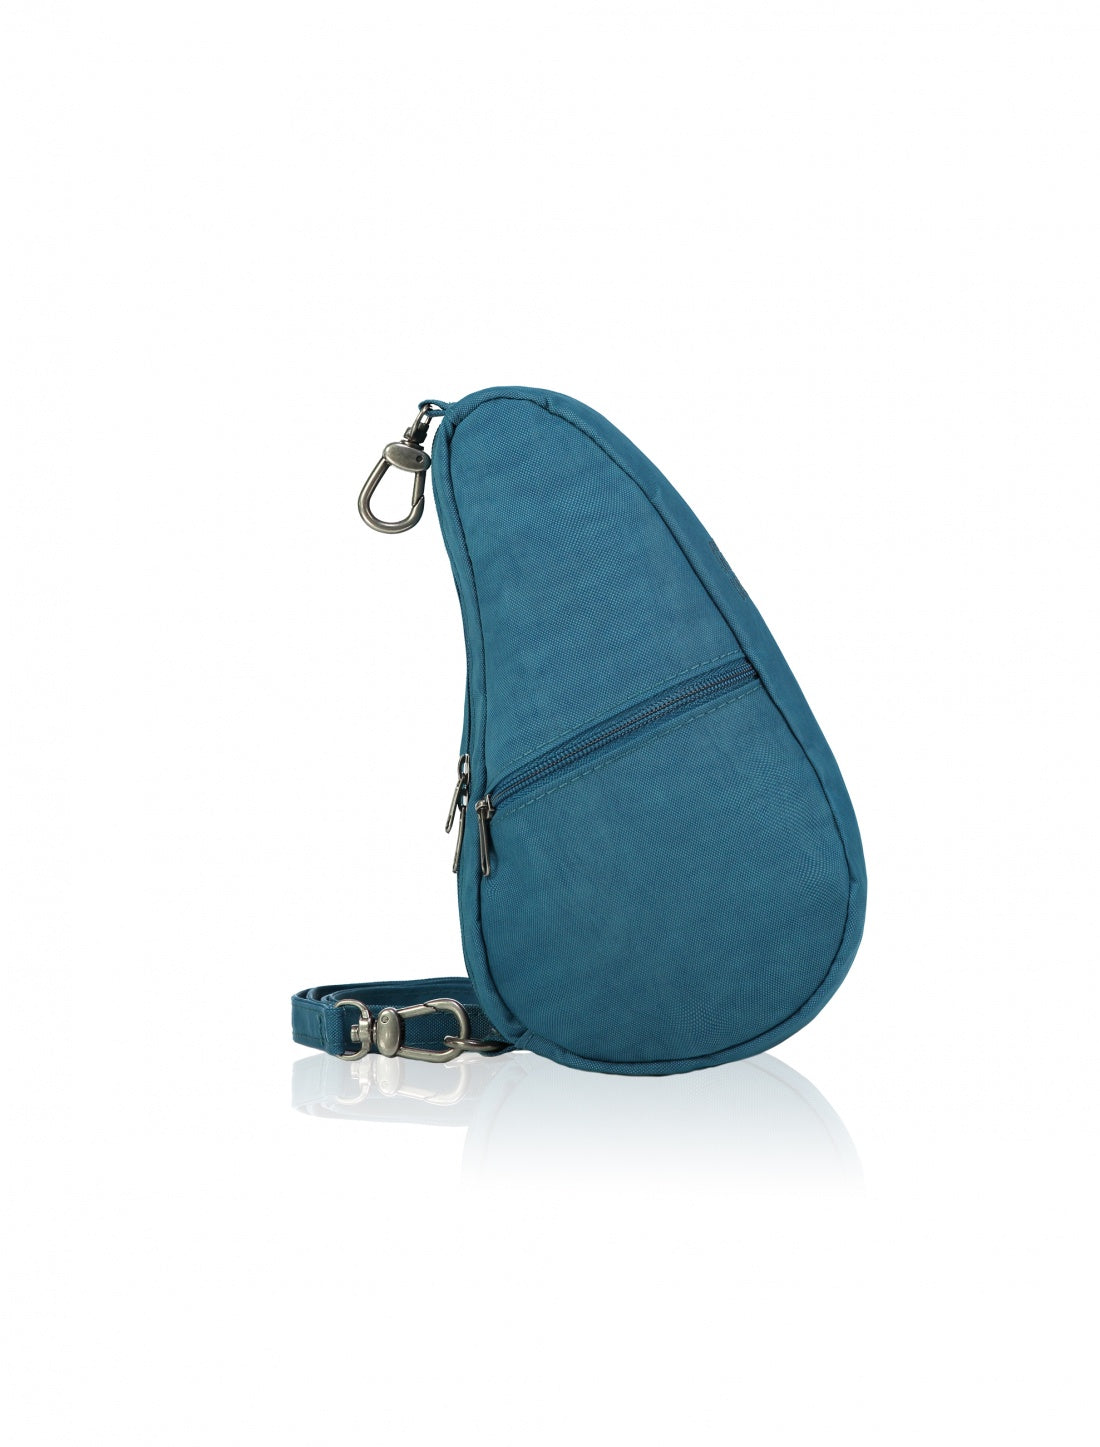 Healthy Back Bag Textured Nylon Baglett - Trailblazer Outdoors, Pickering